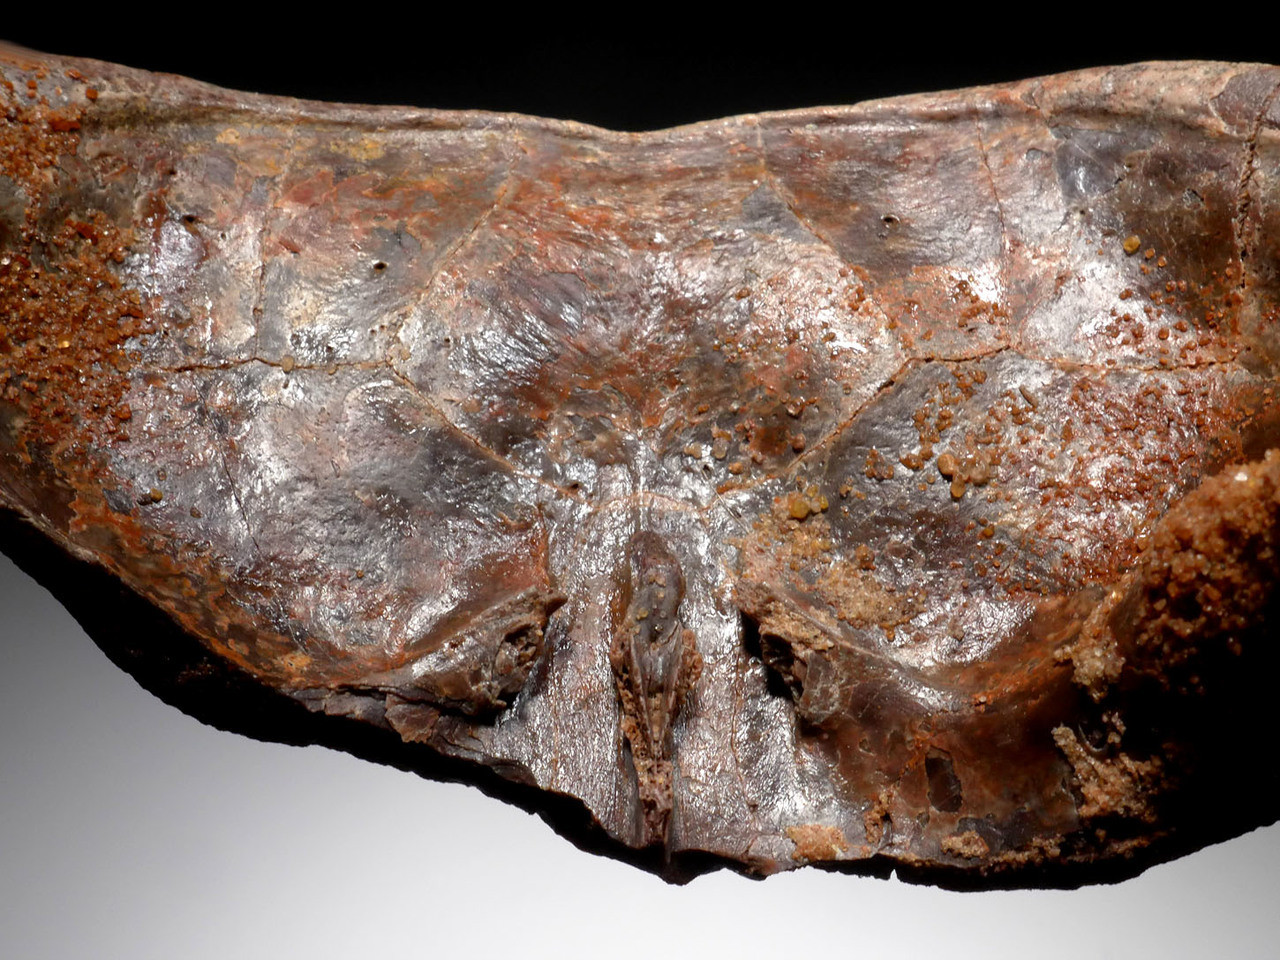 EXTREMELY RARE PARTIAL CARAPACE SHELL OF A DINOSAUR ERA TURTLE HAMADACHELYS FROM NORTH AFRICA *TUR001